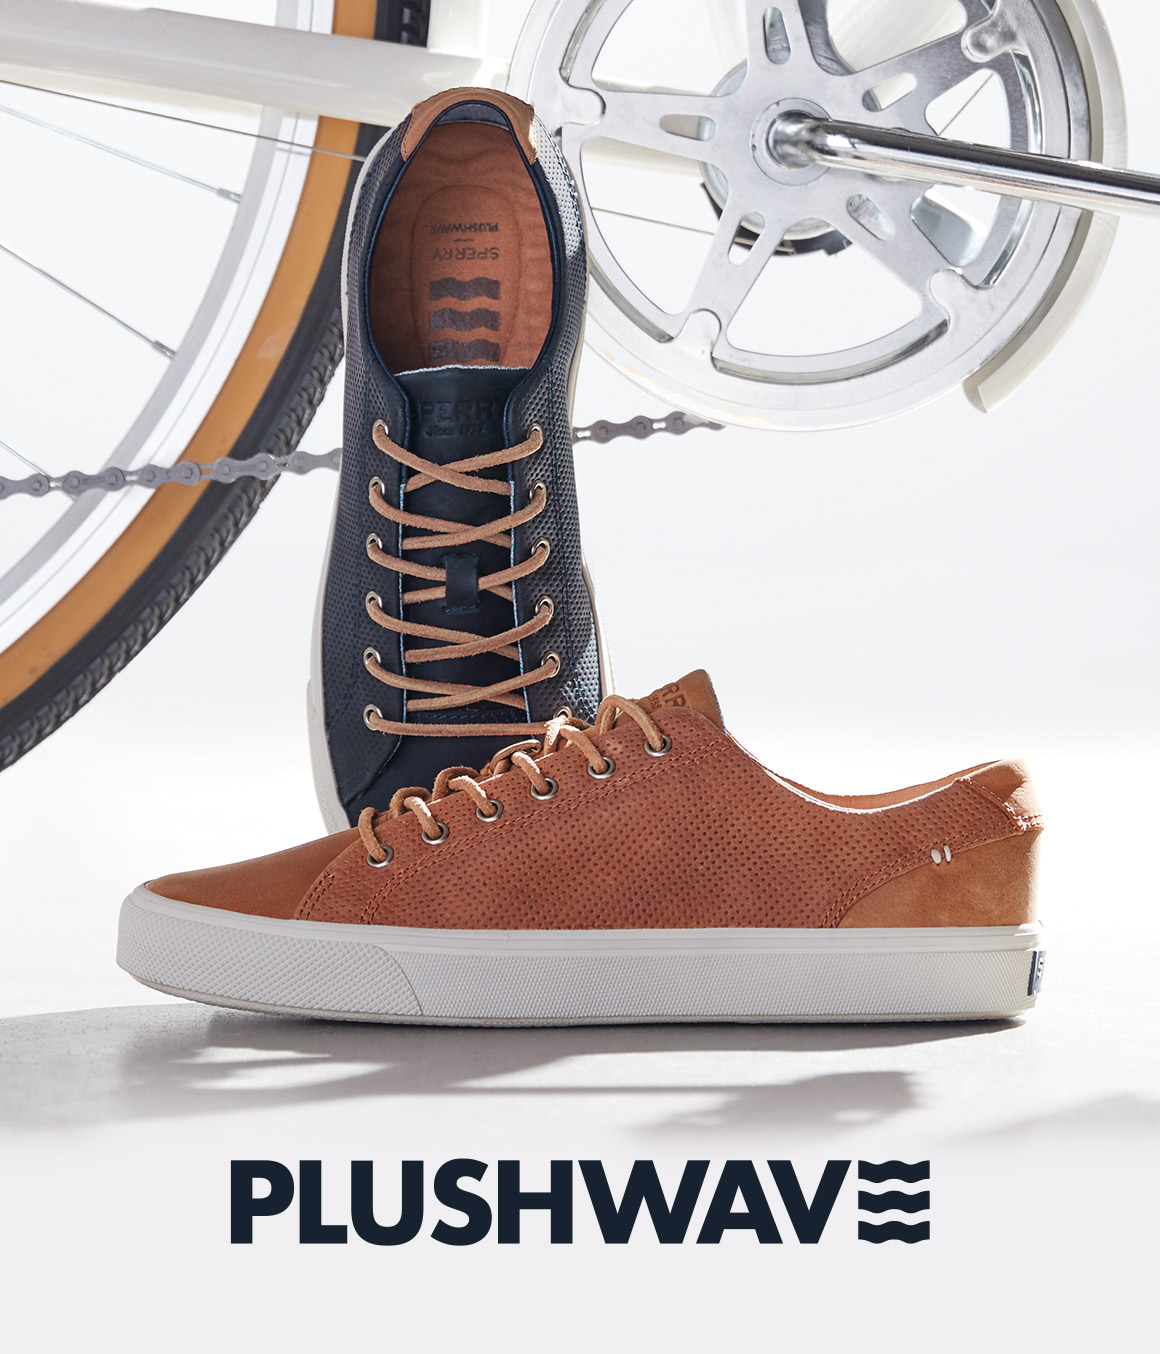 Two mens Plushwave shoes beside the bike.